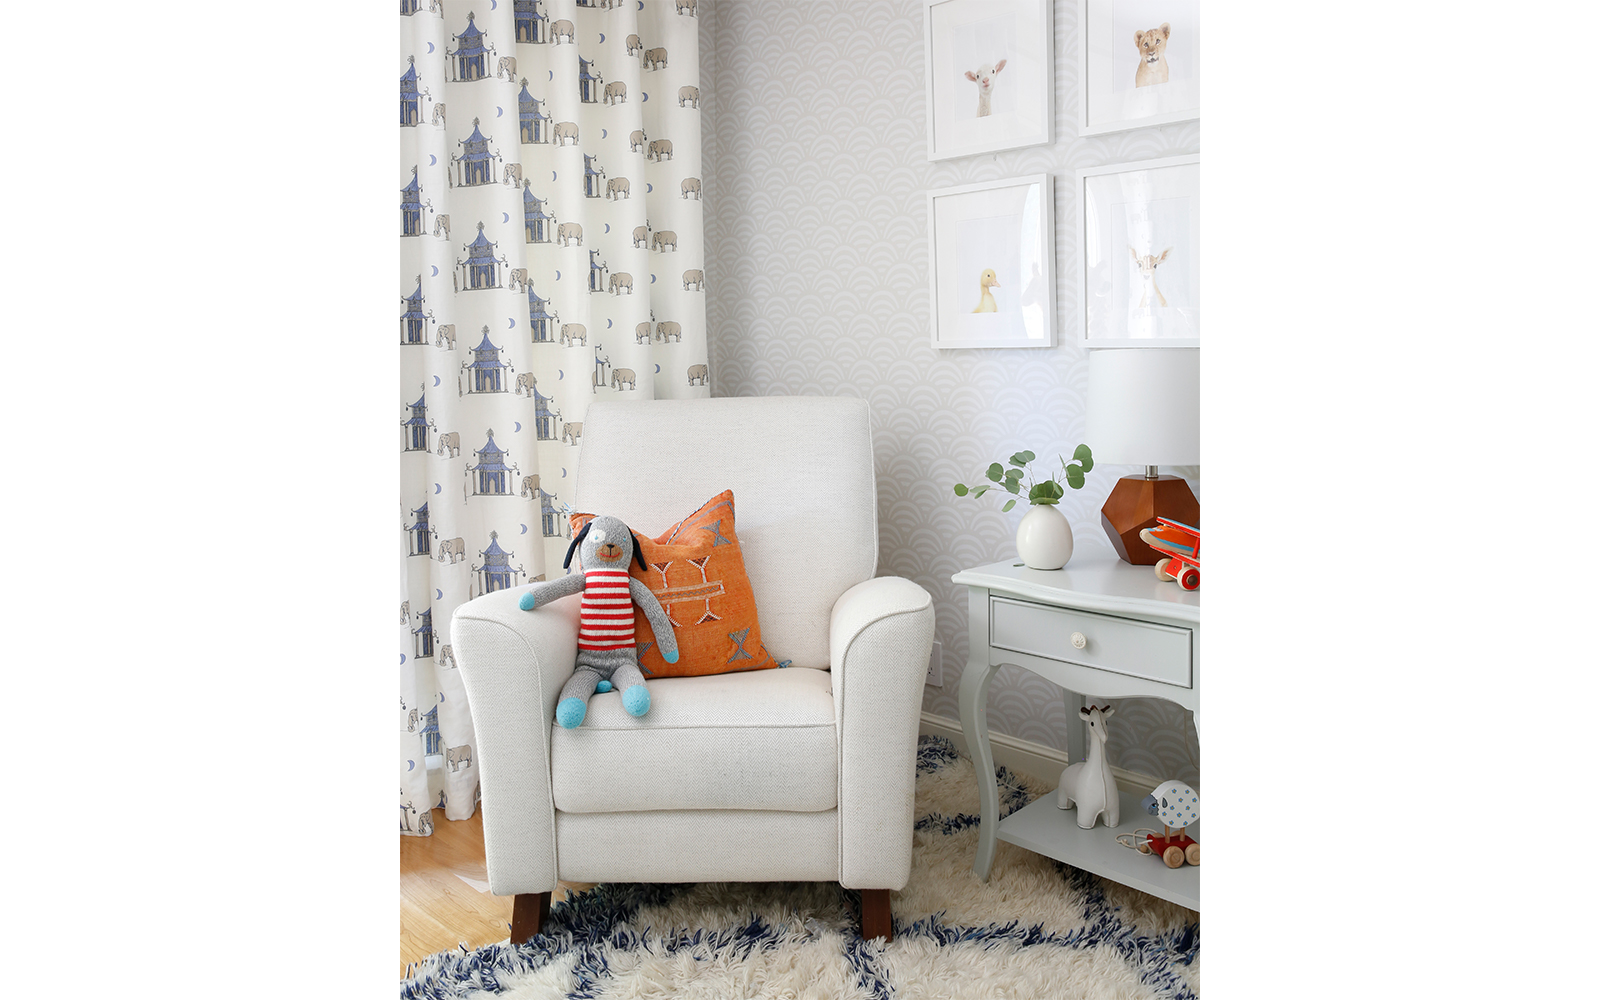 Hillsborough Nursery Decor Chair